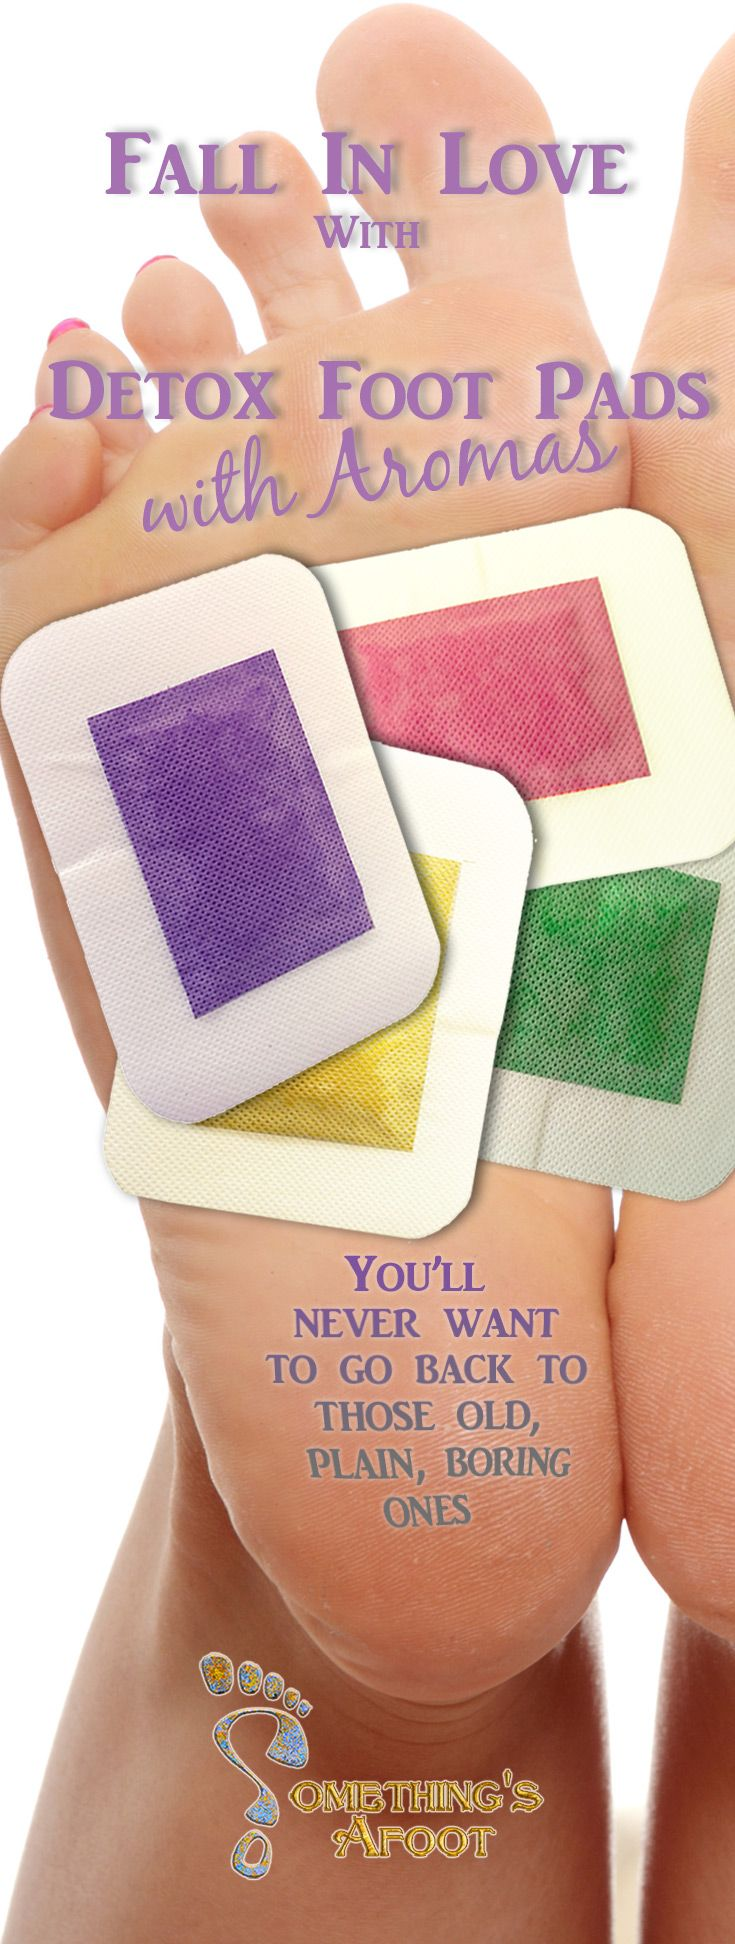 Why do boring when you can do fun?  These detox foot pads have the added benefit of the energies and aromas of lavender, rose, green tea, and chili.  Check them out.  https://yourstore4life.com/collections/healthy-alternatives/Foot-Detox-Patches